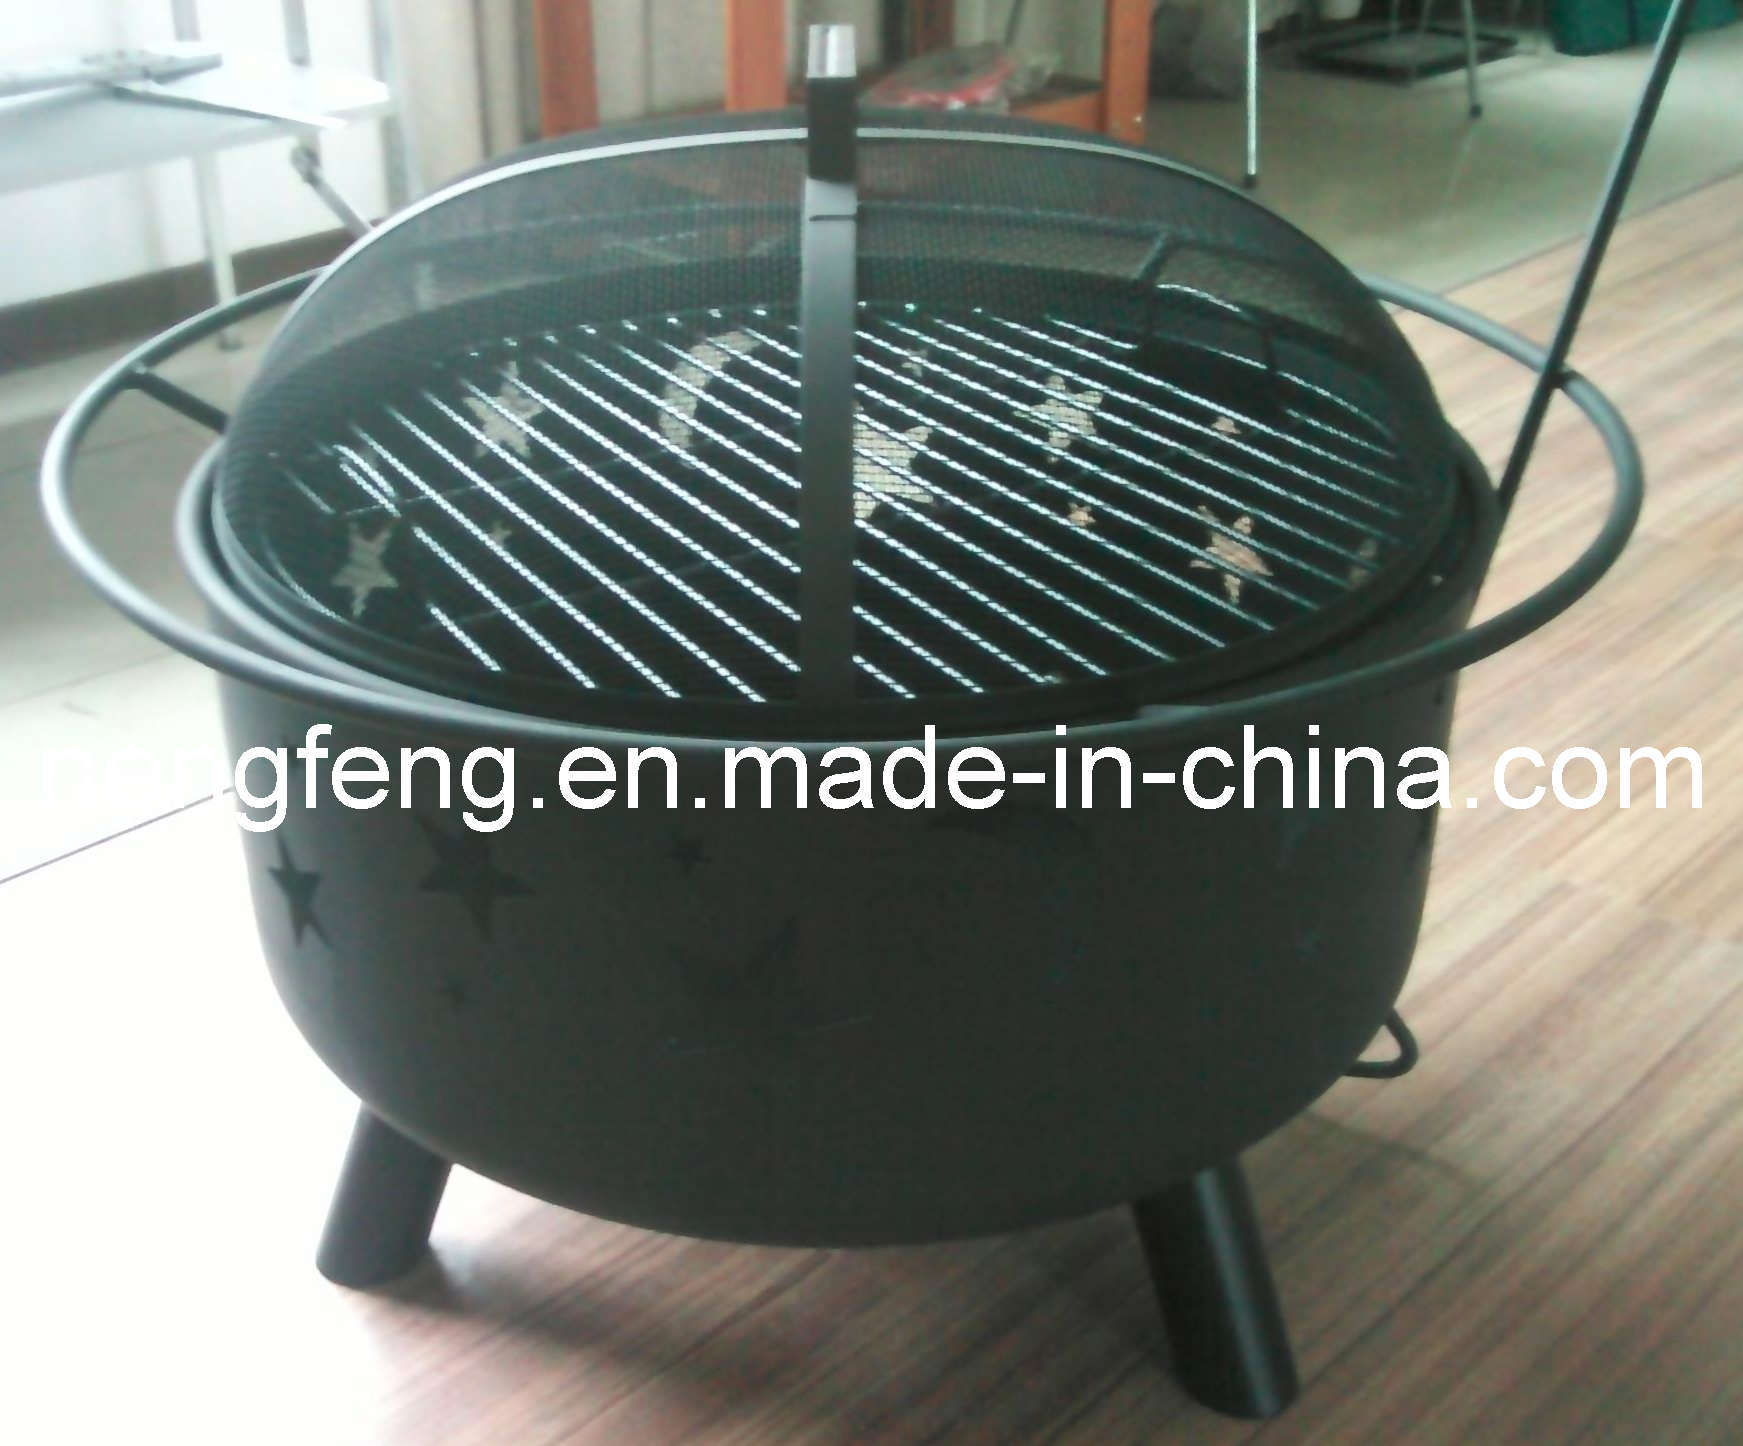 Replacement Barbeque Burners For Your Gas Grill. Stainless Steel